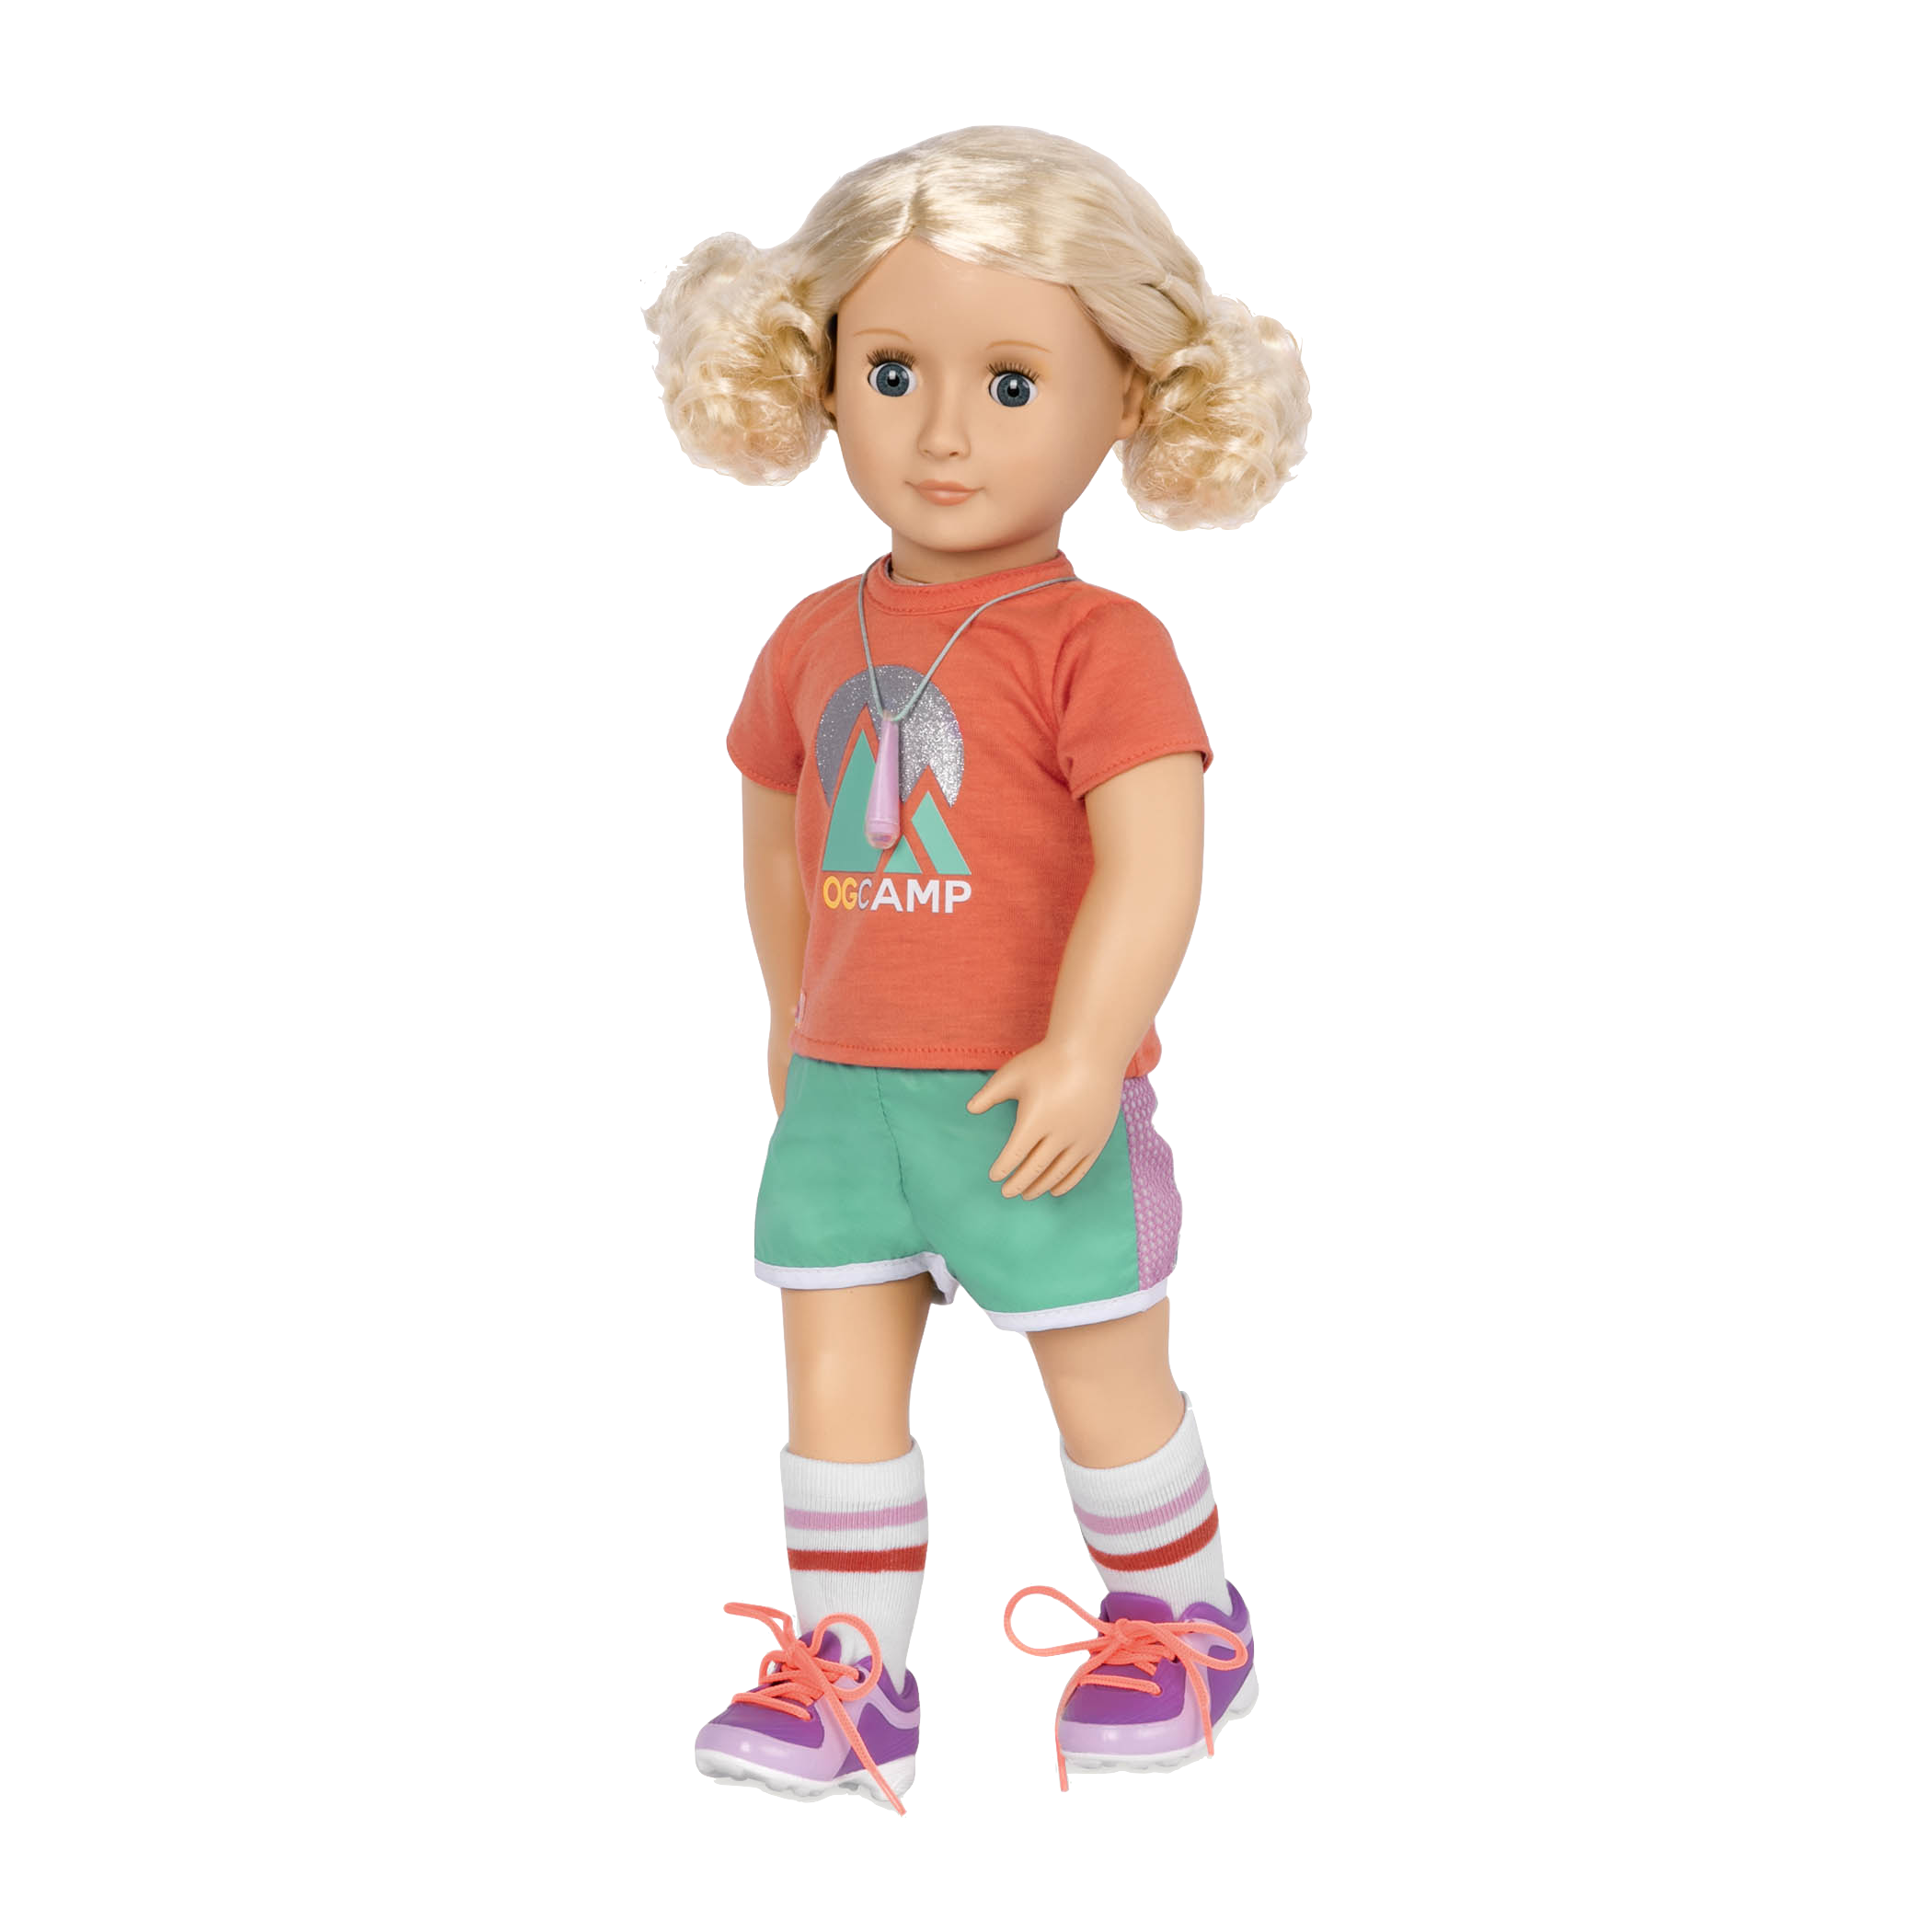 Clarissa wearing the Summer Camp outfit